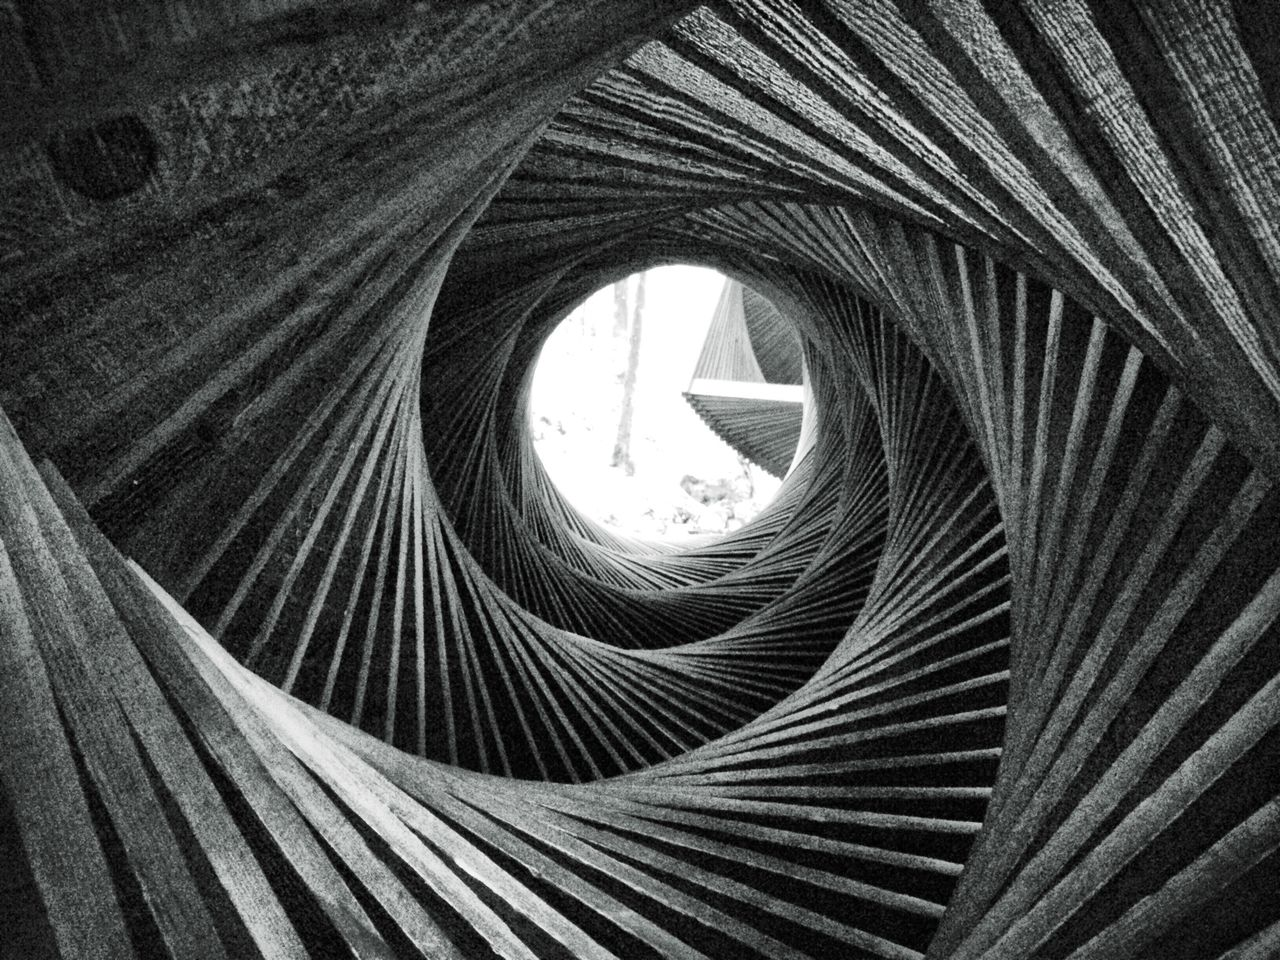 Close-Up Of Spiral Wooden Structure